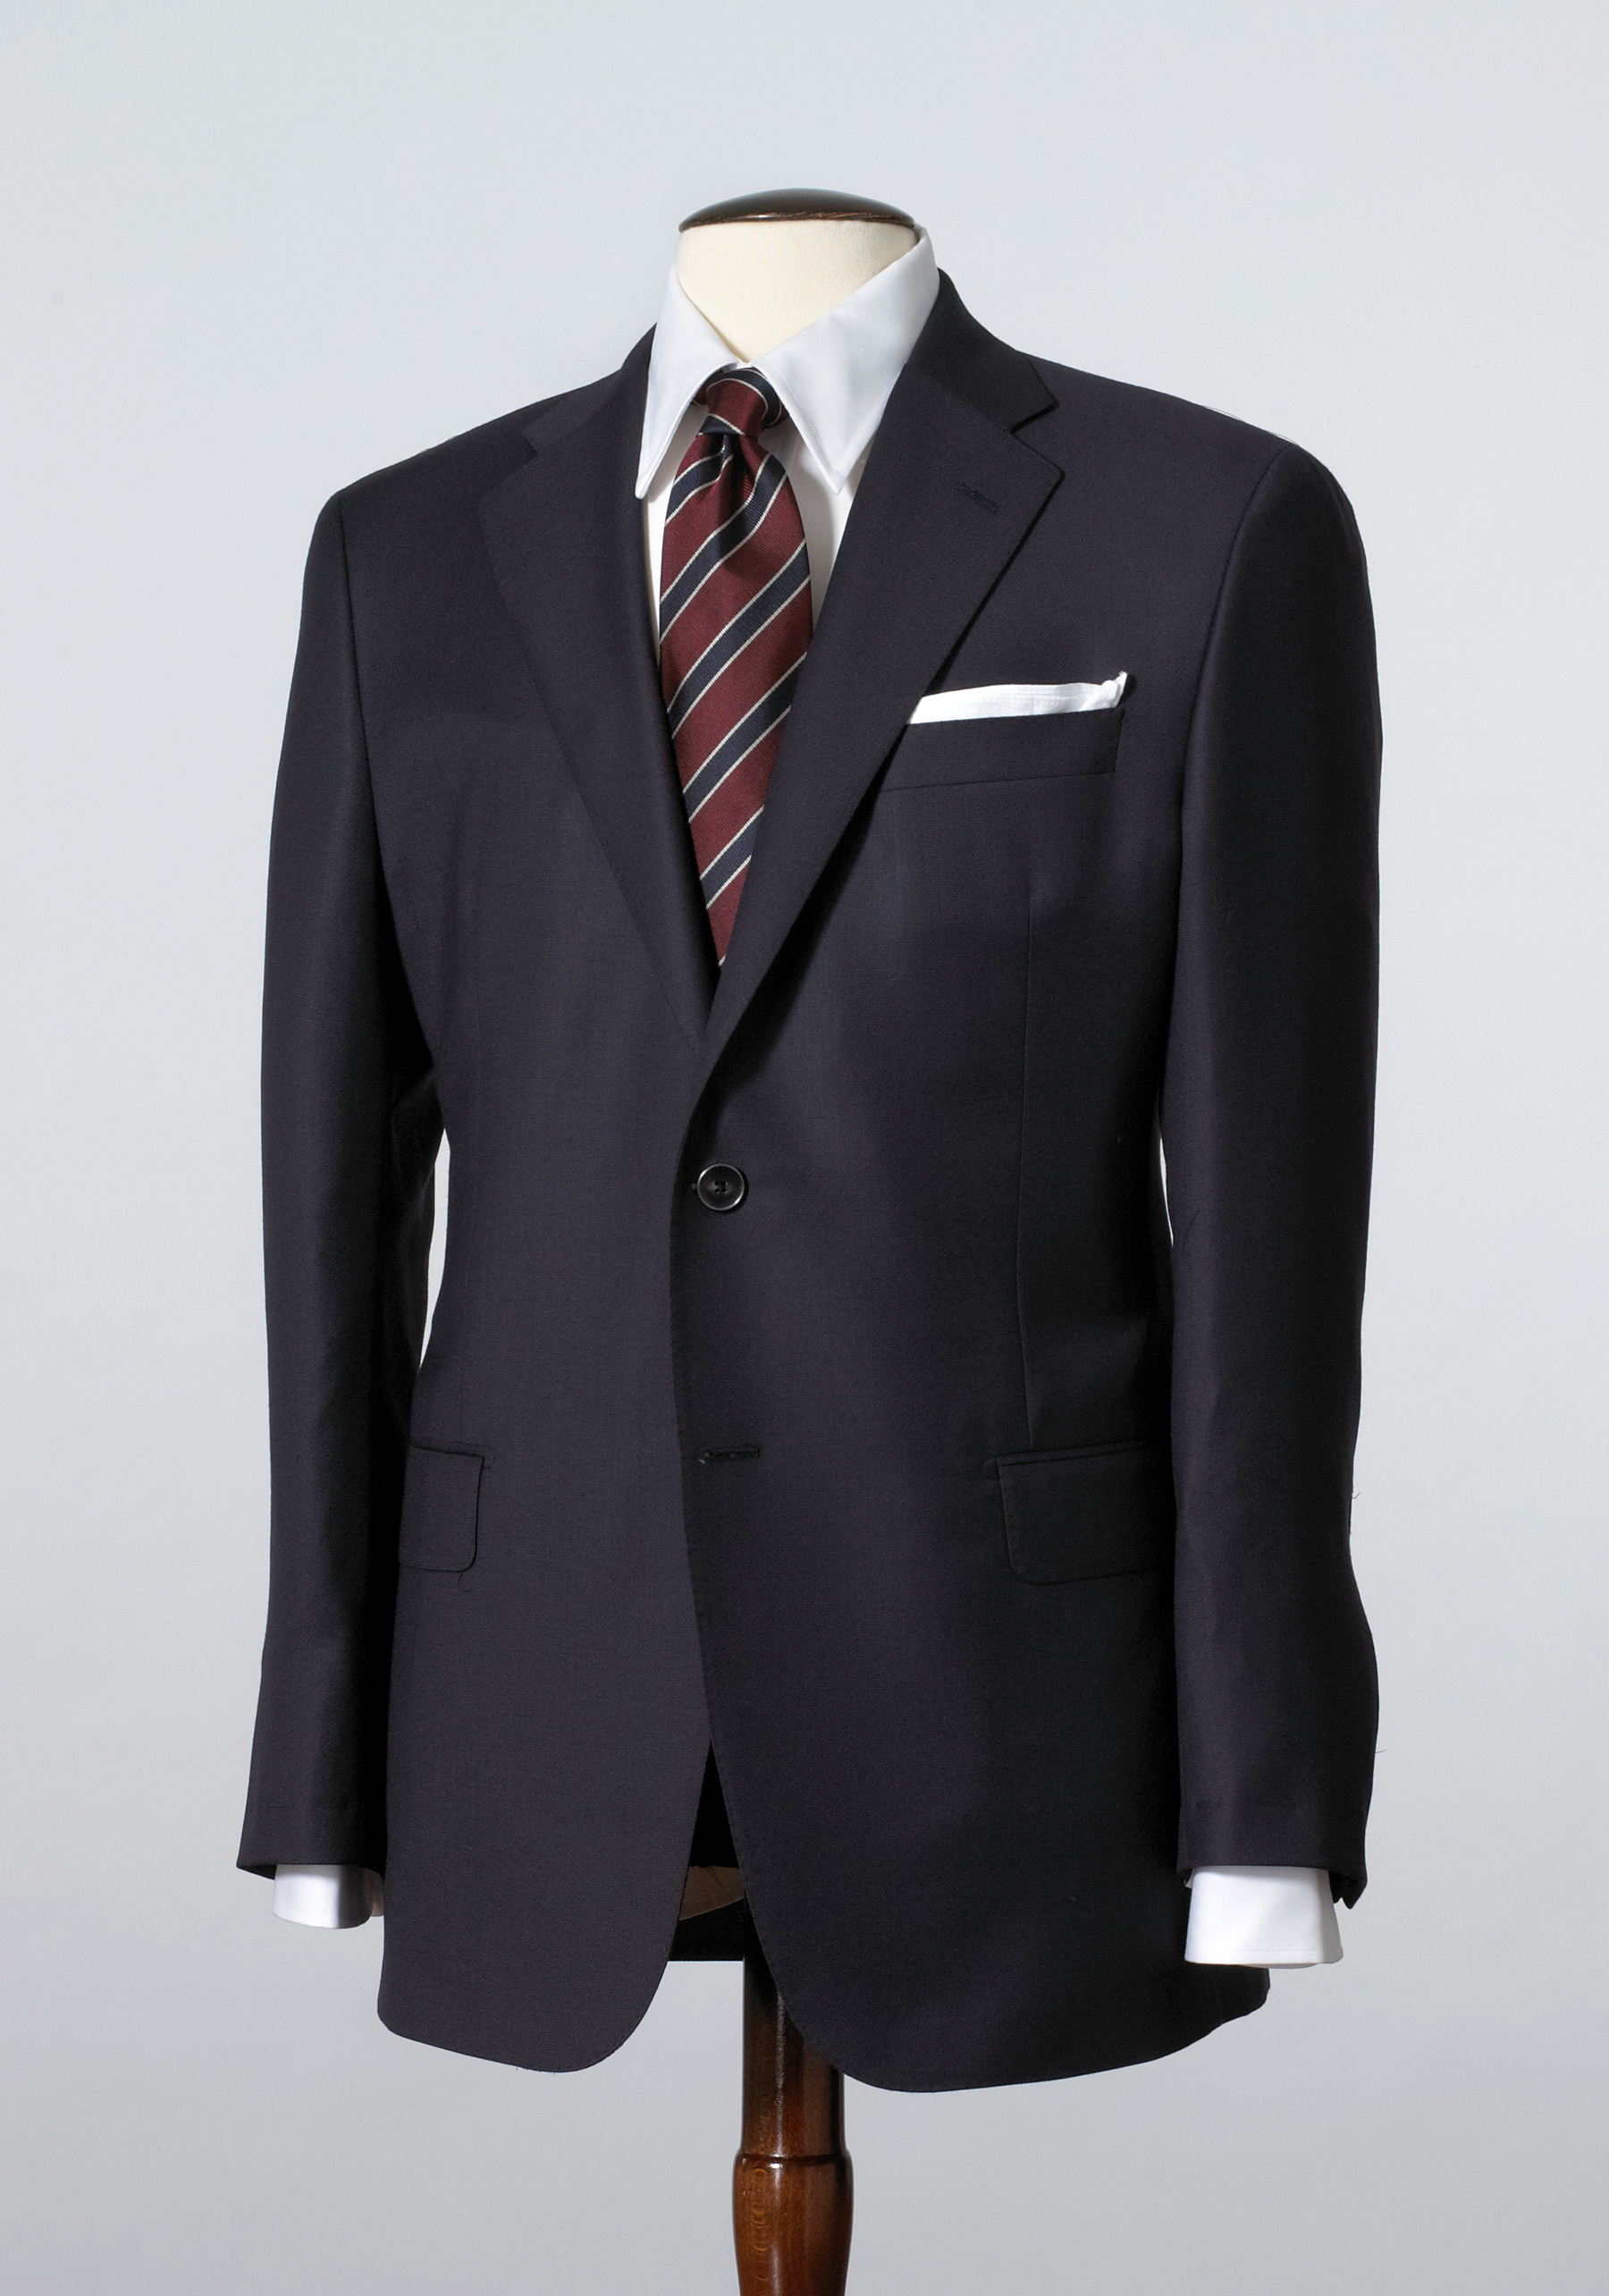 how to dress for an interview suits and more hickey man blog my advice to men buy every piece in this look wear this every time